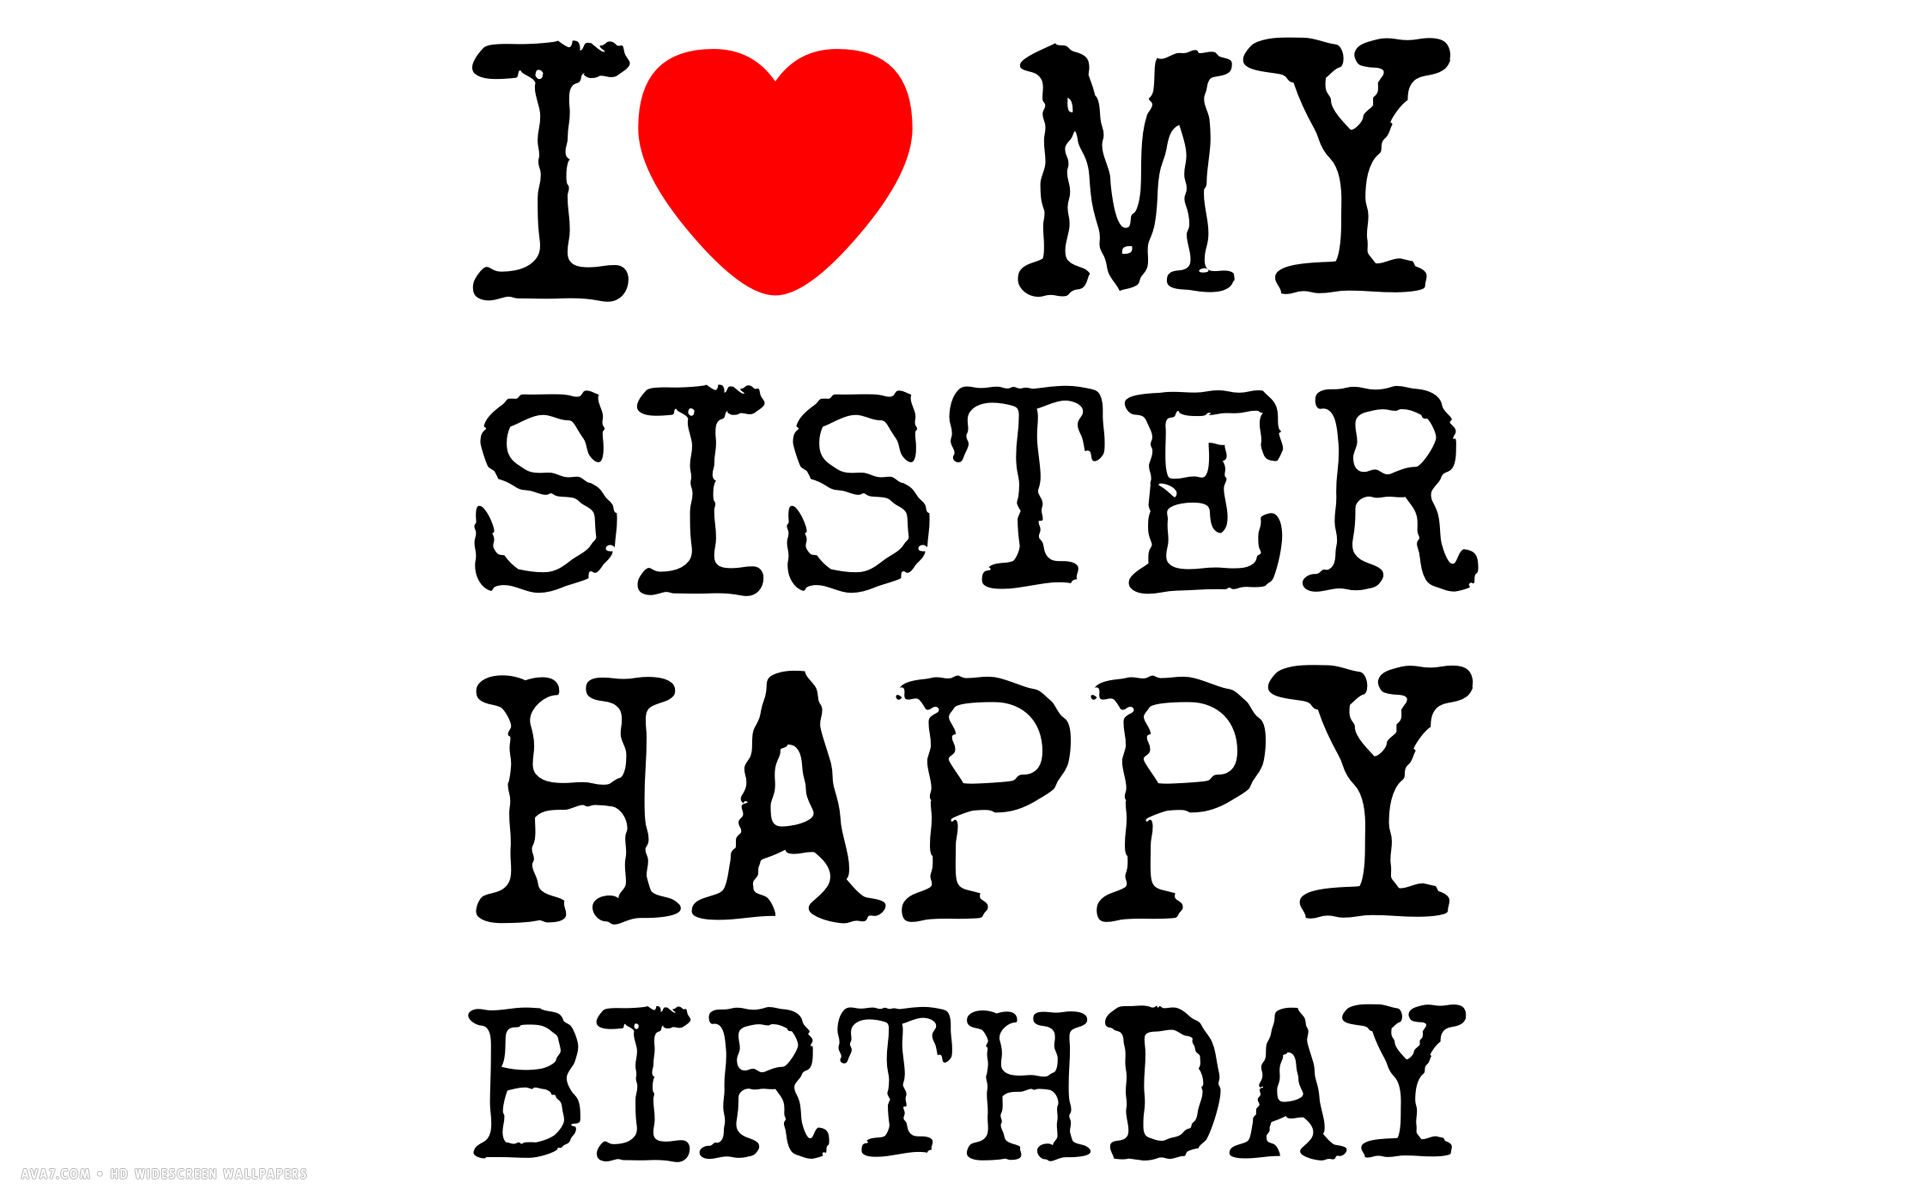 happy birthday i love my sister text simple hd widescreen wallpaper 1920x1200